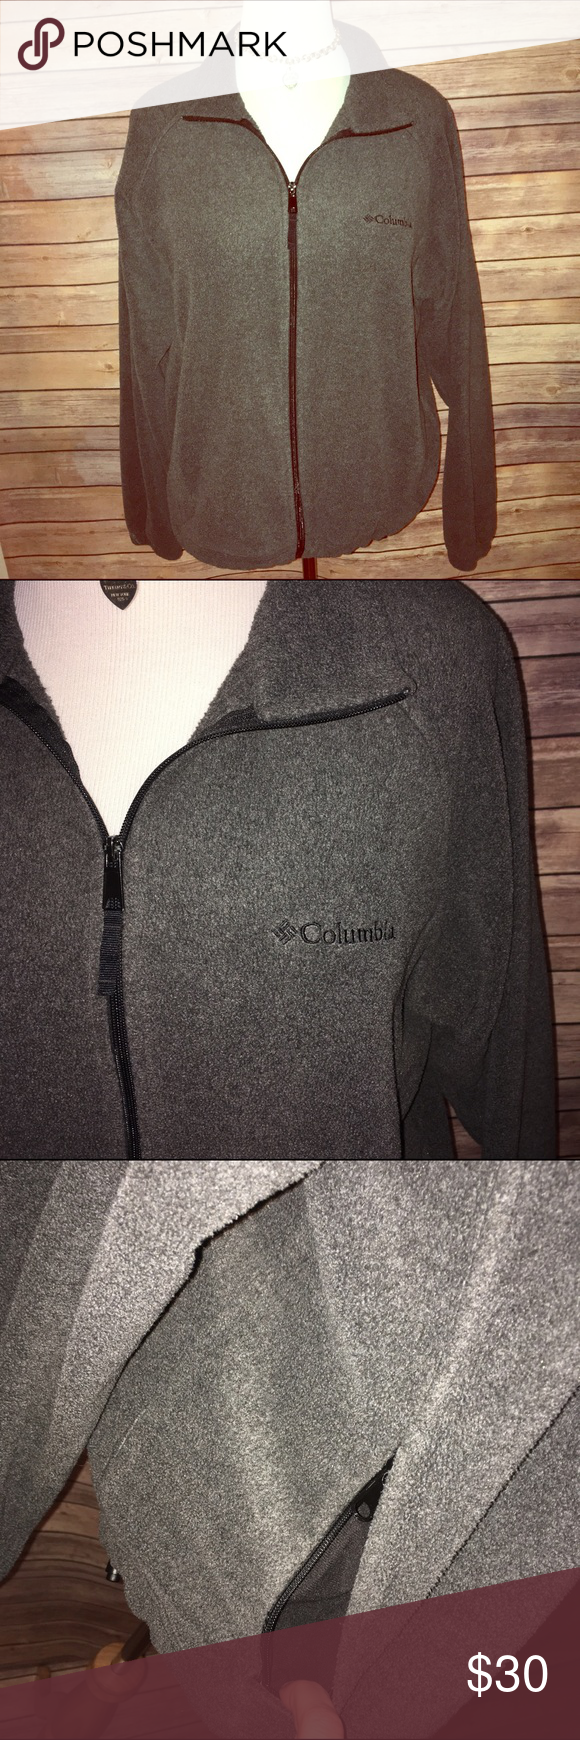 Charcoal Gray Columbia Fleece Jacket Super soft, warm, and cozy! Charcoal gray shade with black logo and zipper. Excellent condition. Check out my other listings to bundle and save 25% 😎! Columbia Jackets & Coats